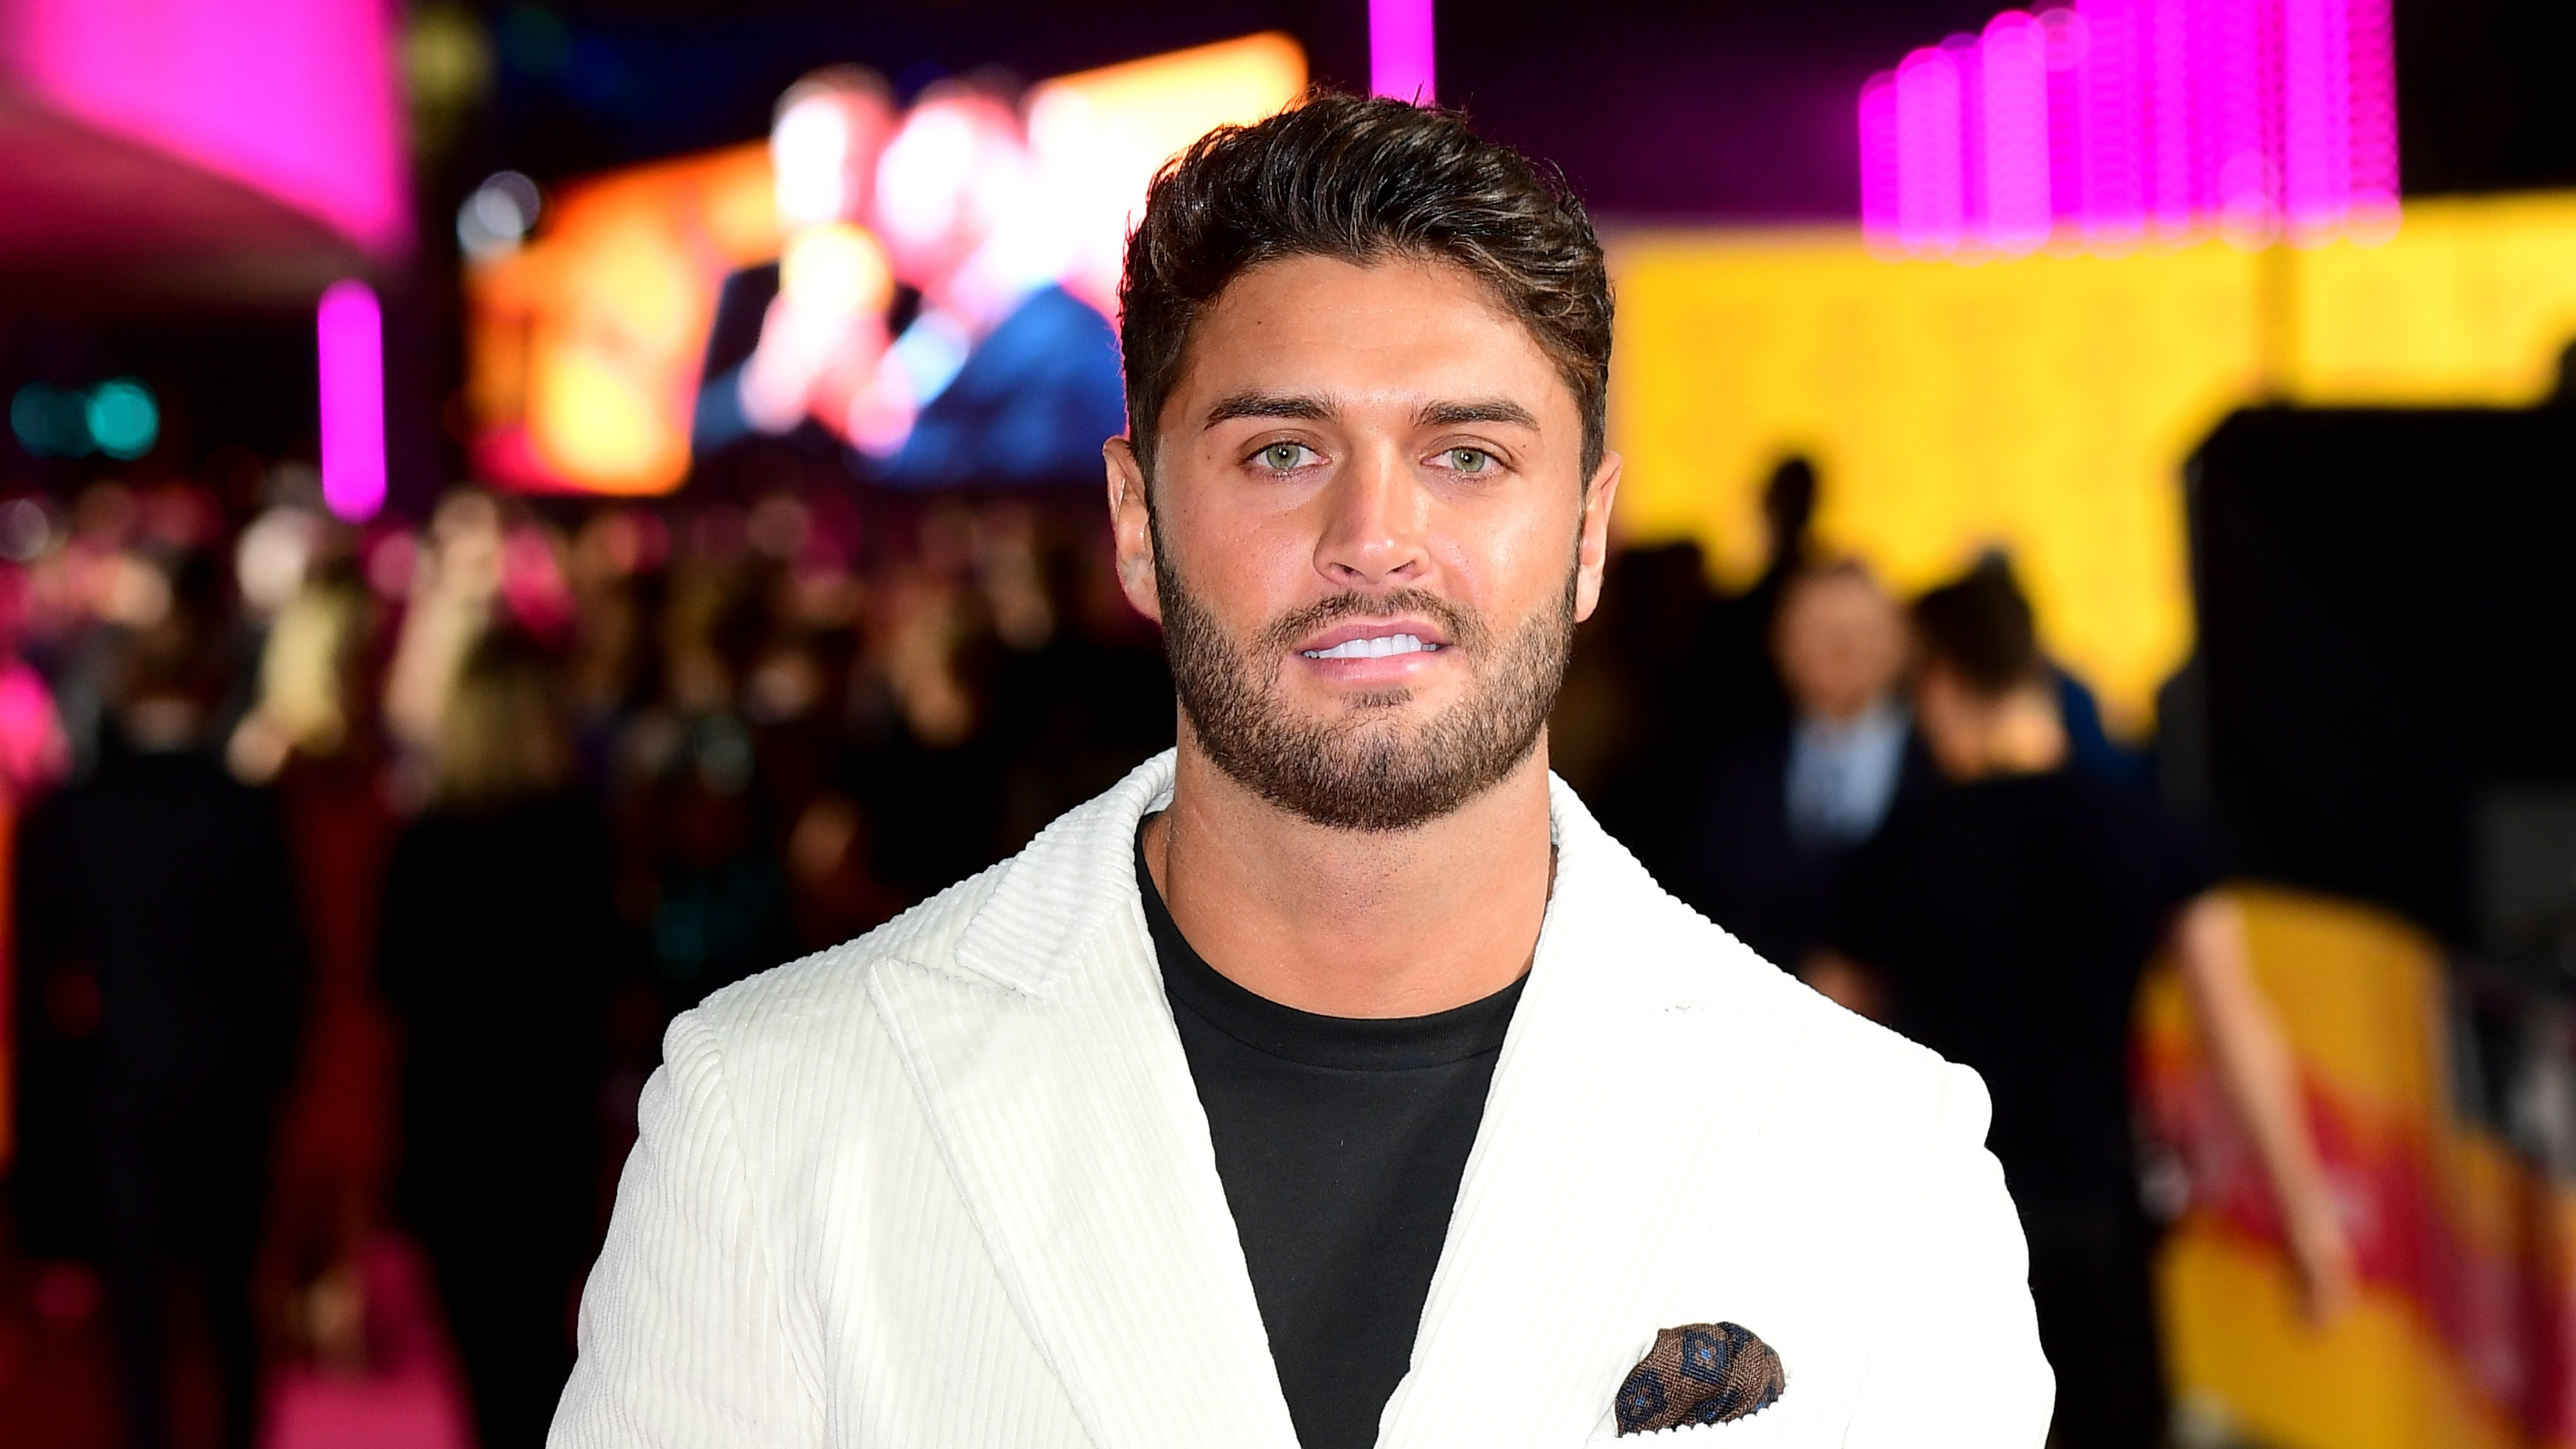 Love Island star Mike Thalassitis dies: Tyla Carr leads tributes